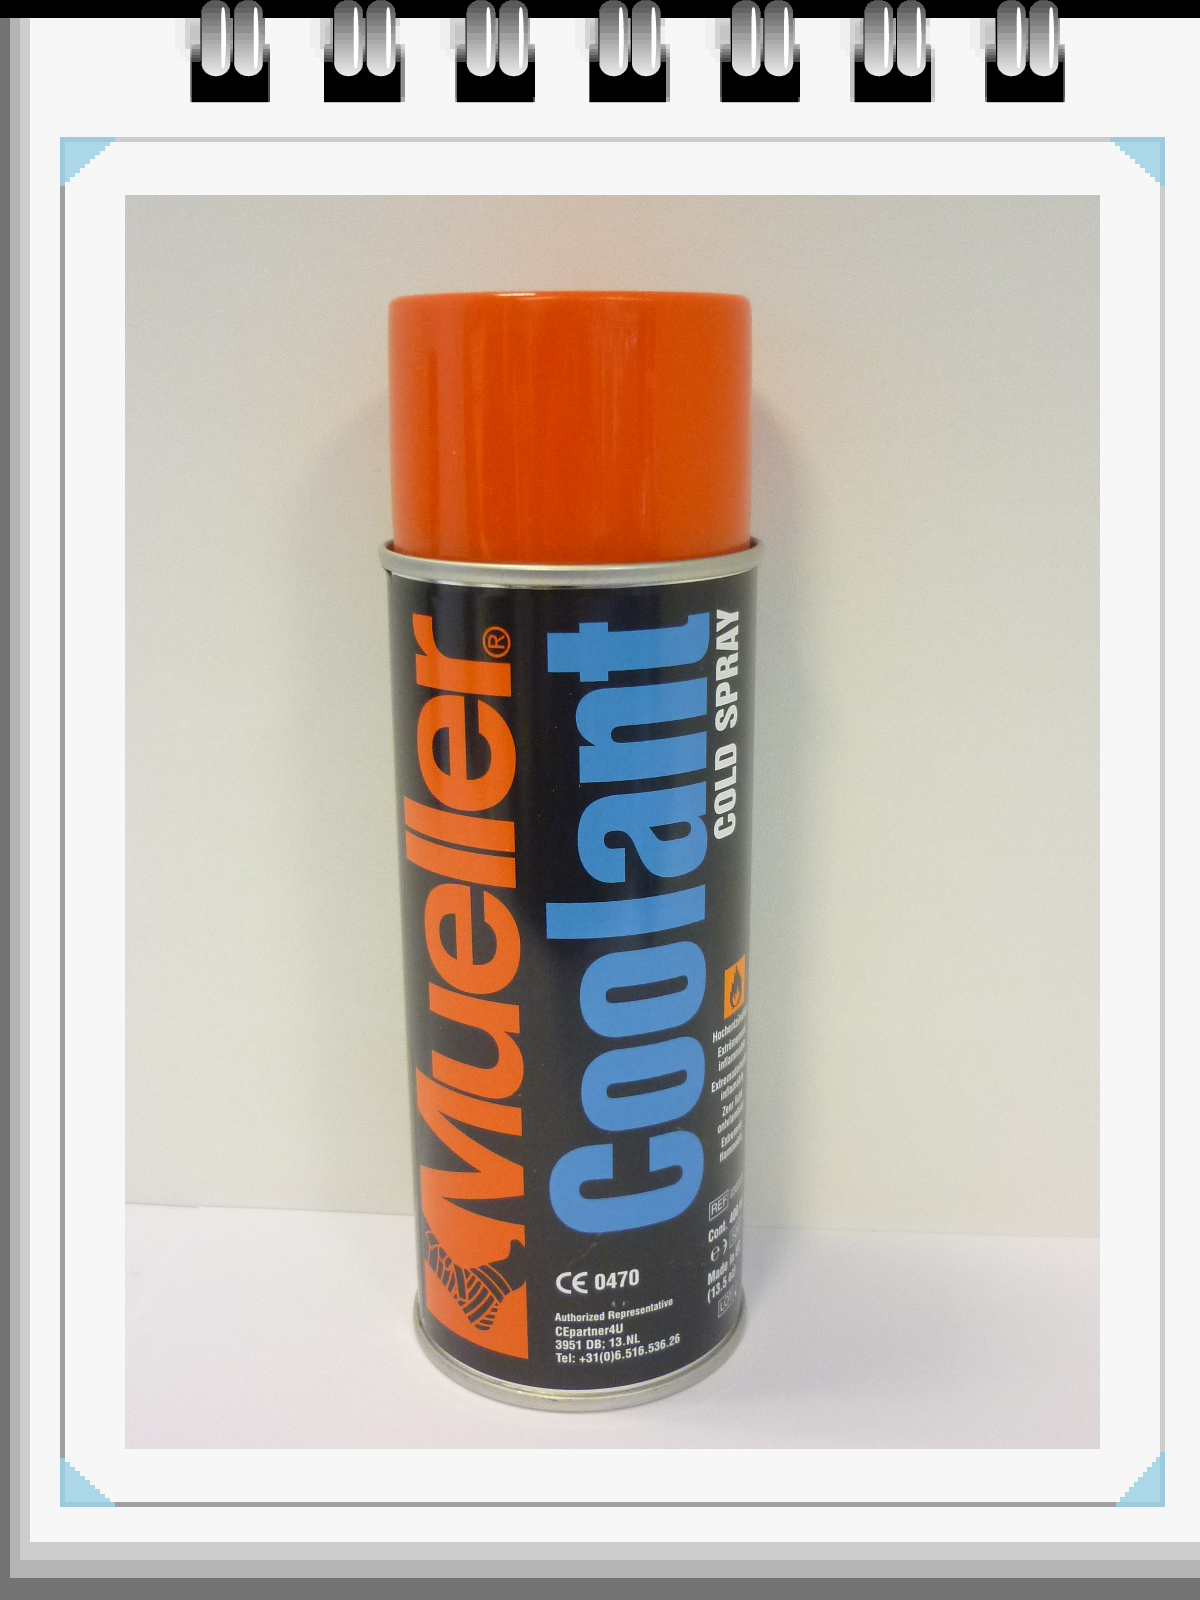 Koudespray: Cold Spray, Mueller, 400ml